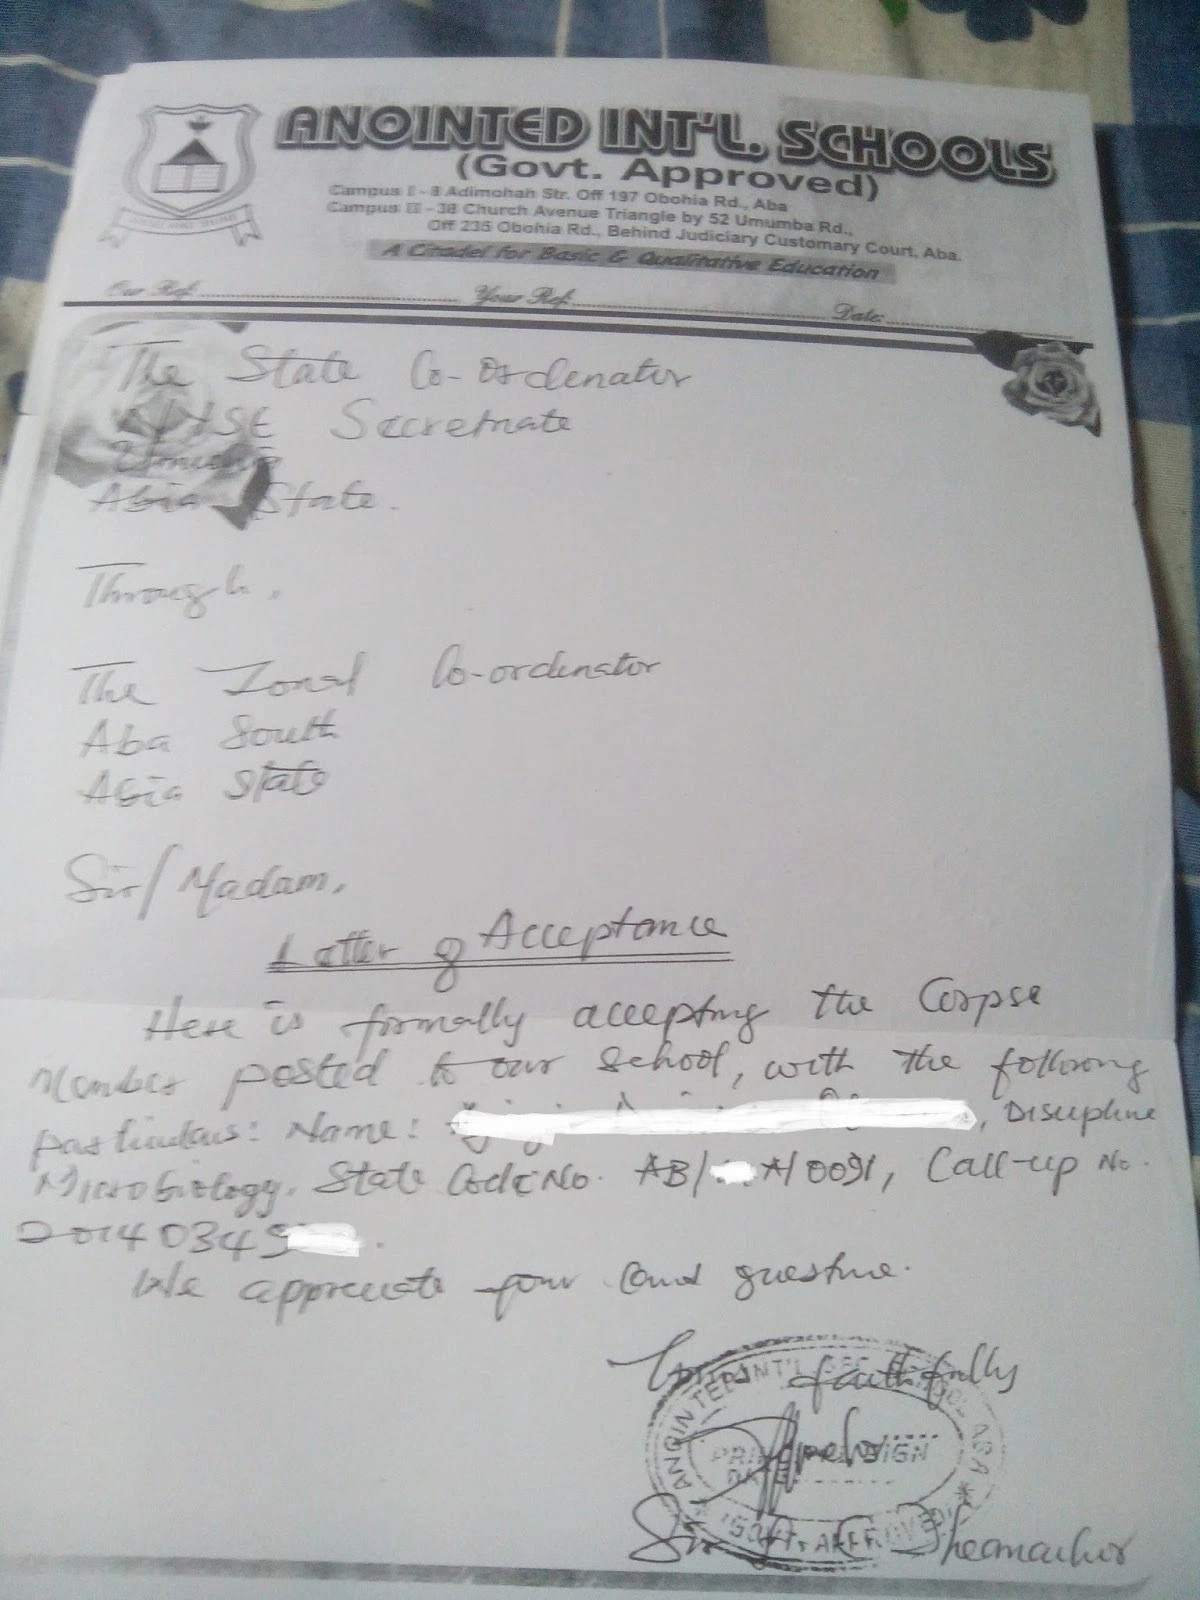 nysc company clearance letter  NYSC acceptance letter format Legit